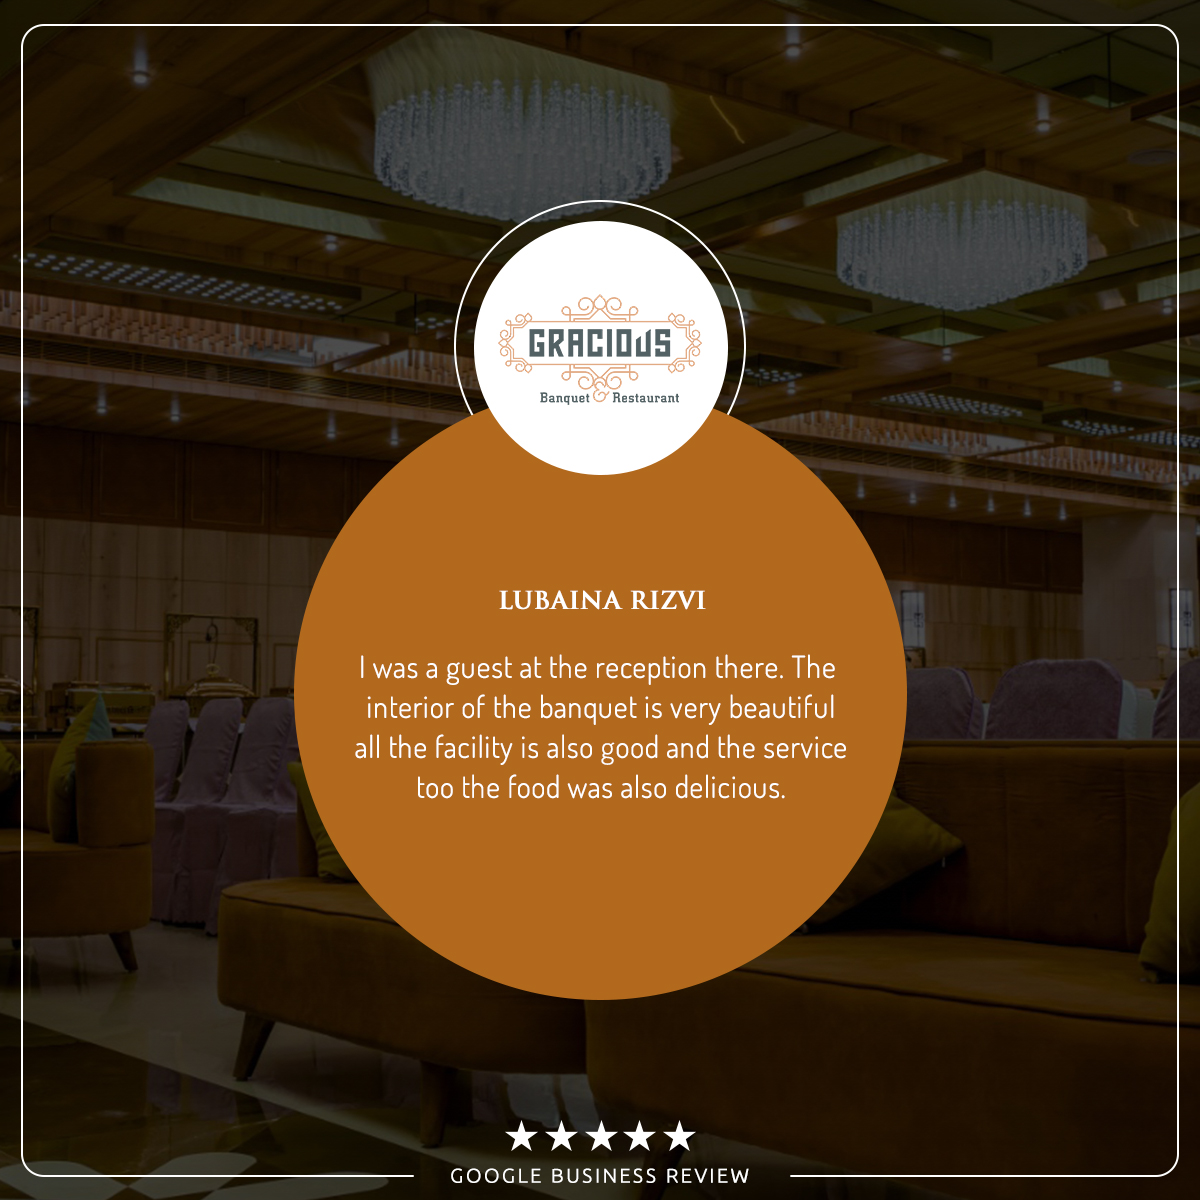 Google Business Review  #Gracious #Banquet #Restaurant #Ahmedabad #food #events #conference #appetizer #mocktail #punjabi #chinese #mexican #thai #italian #continental #seminarhalls #ringceremony #reception #babyshower #wedding #anniversary #kids #birthday #party #paneer #review